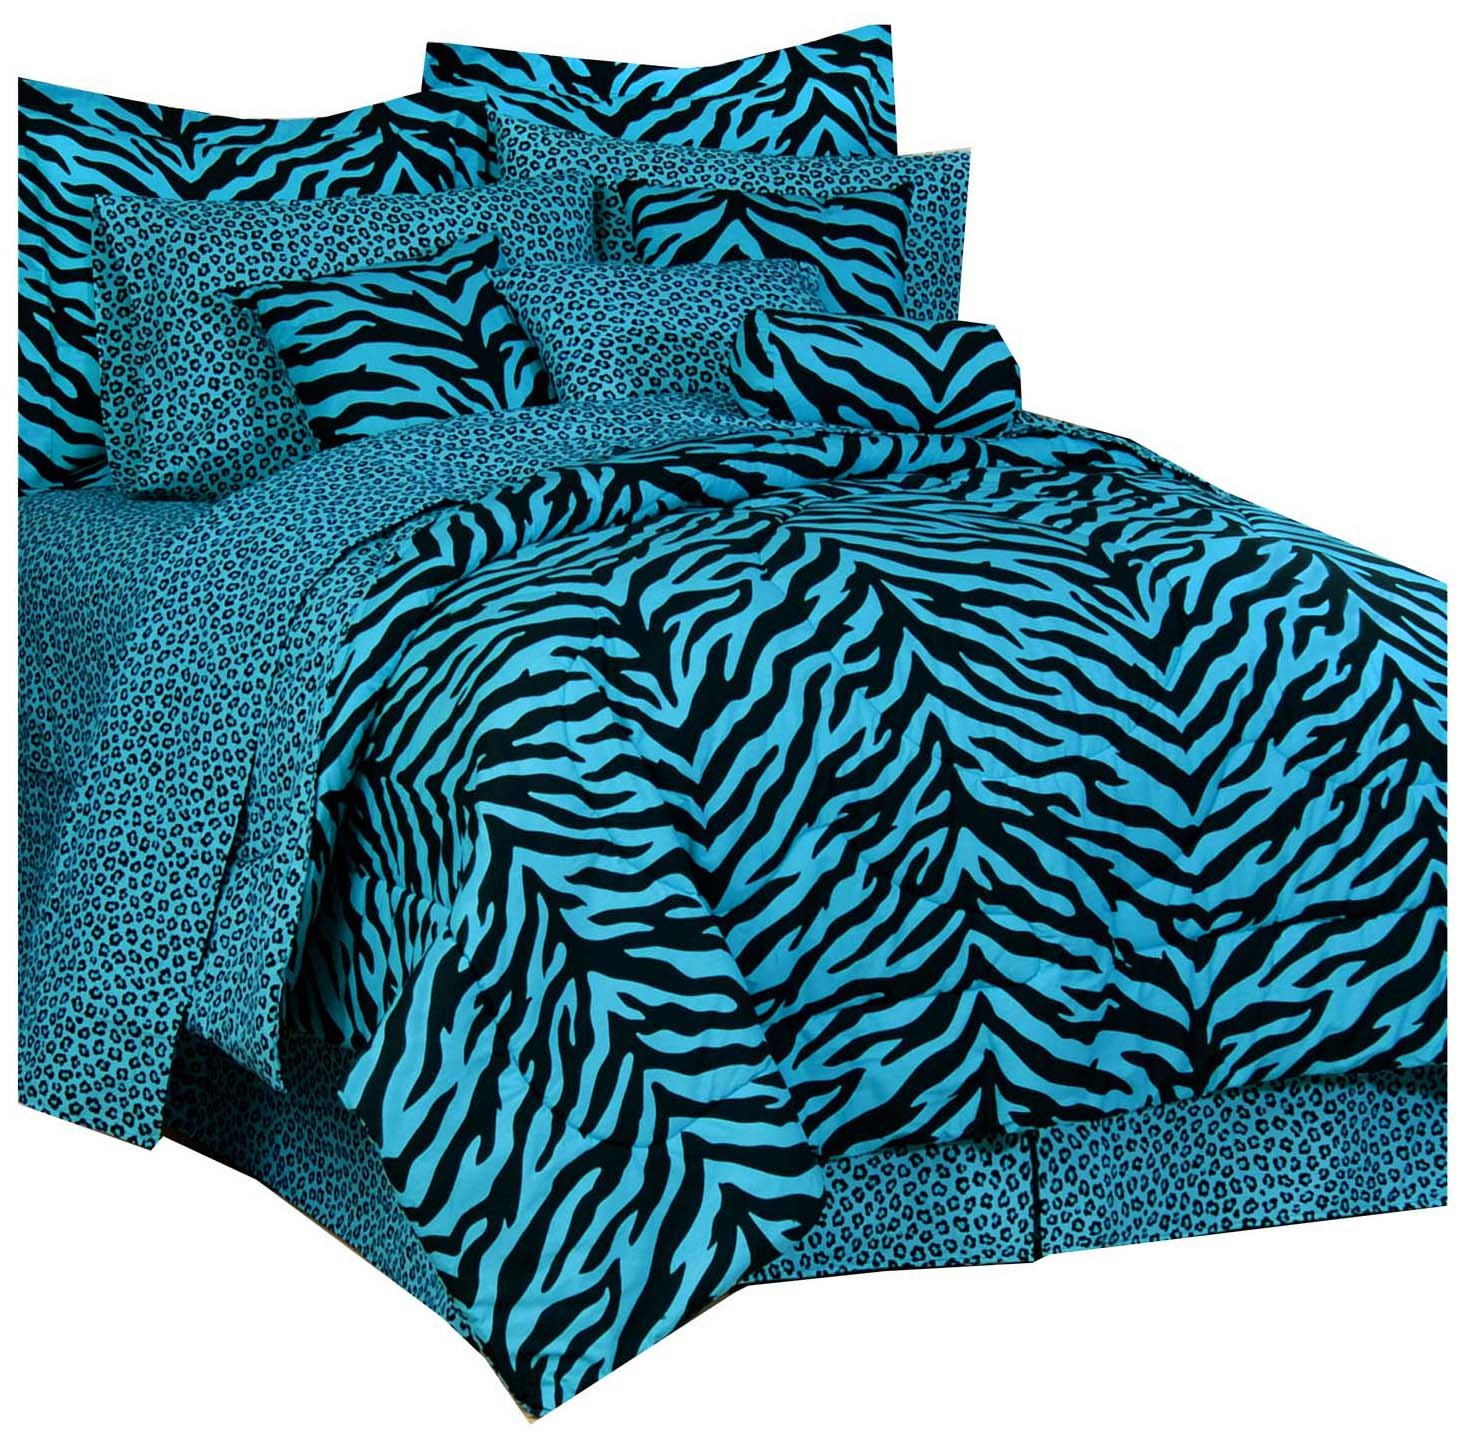 Animal print bedroom sets - Amazon Com Zebra Print Bed Bed In A Bag Lime Green And Black Xl Twin Home Kitchen